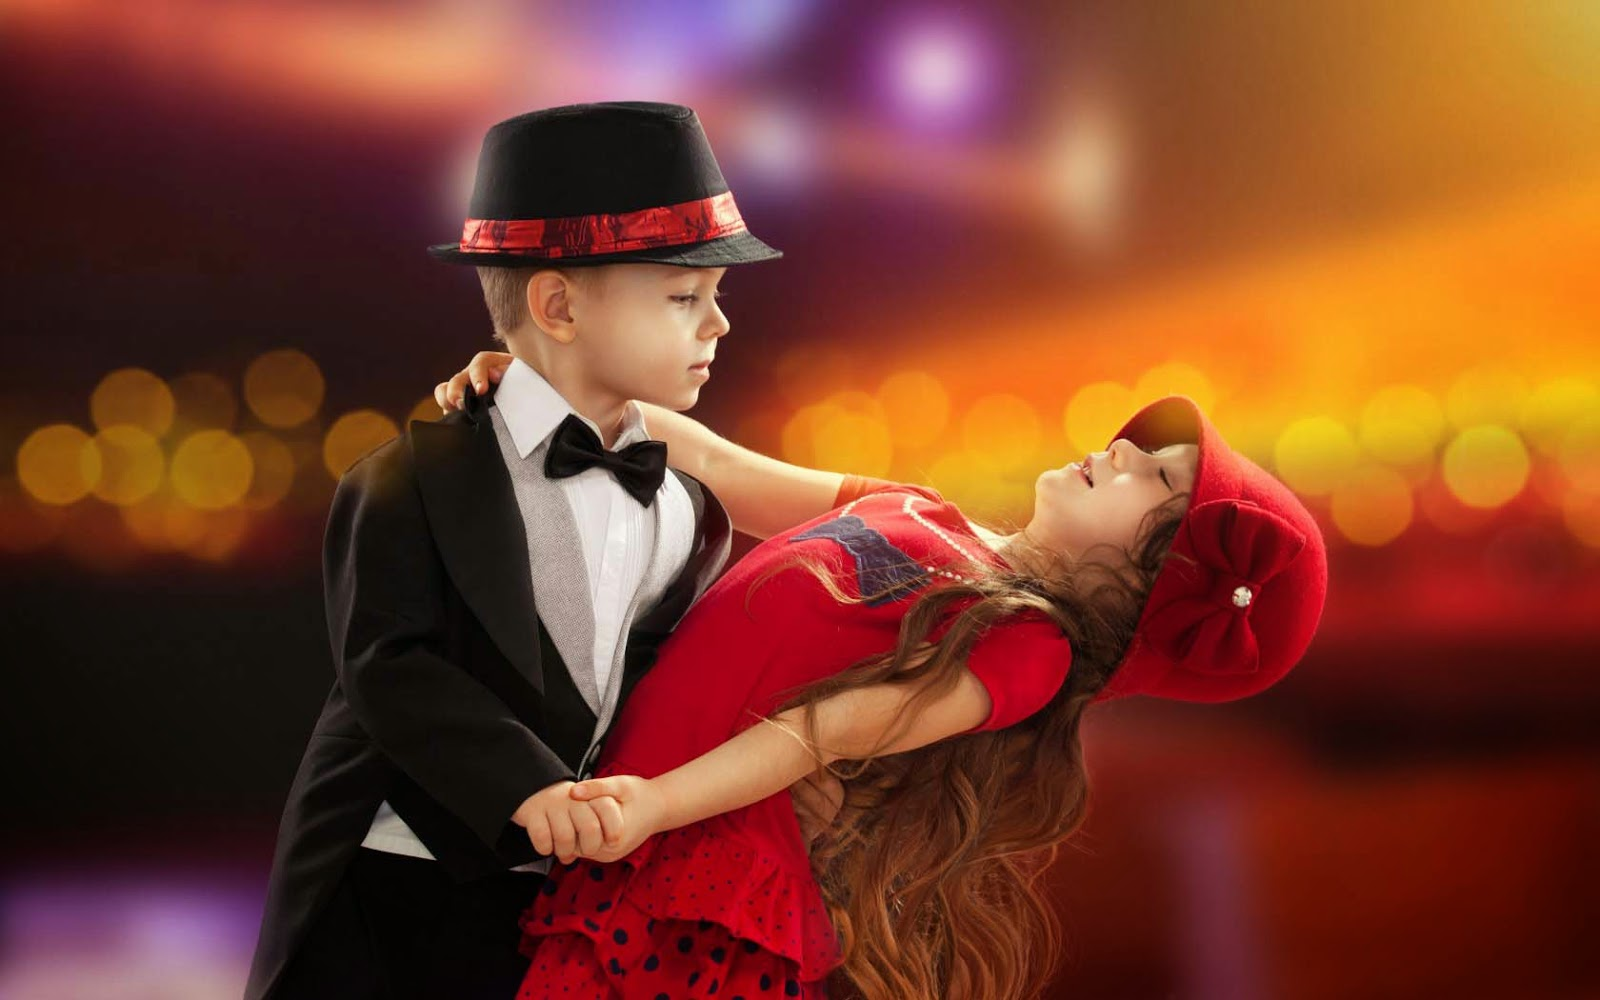 98+ Romantic Baby Couple Hd Wallpaper Gratis Terbaru